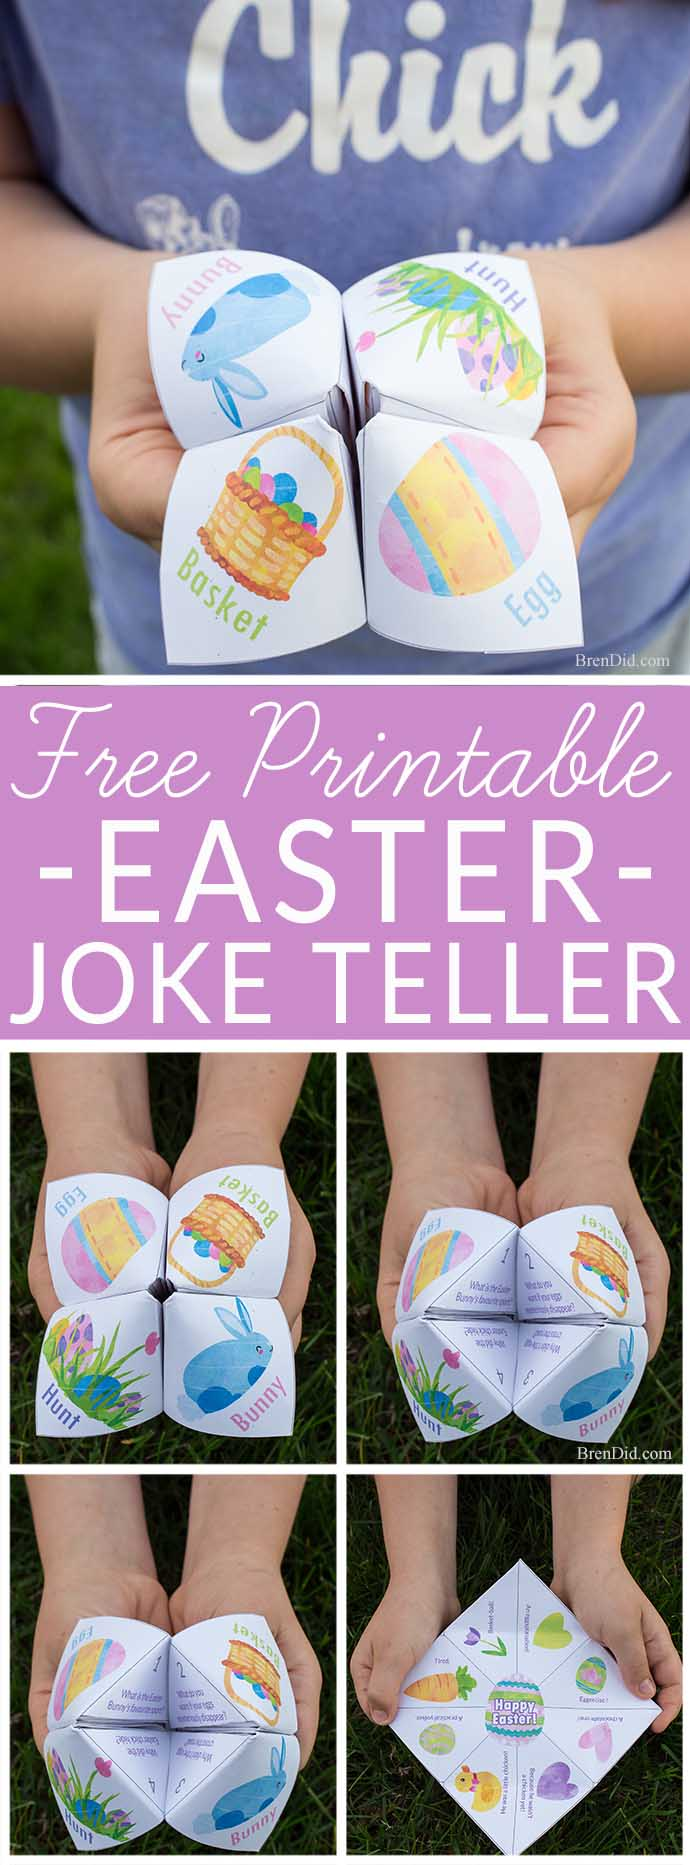 Kids love this silly Easter Joke Teller full of fun jokes and share some laughs with your favorite kids. Cootie catcher. Fortune teller. East craft. #Easter #joketeller